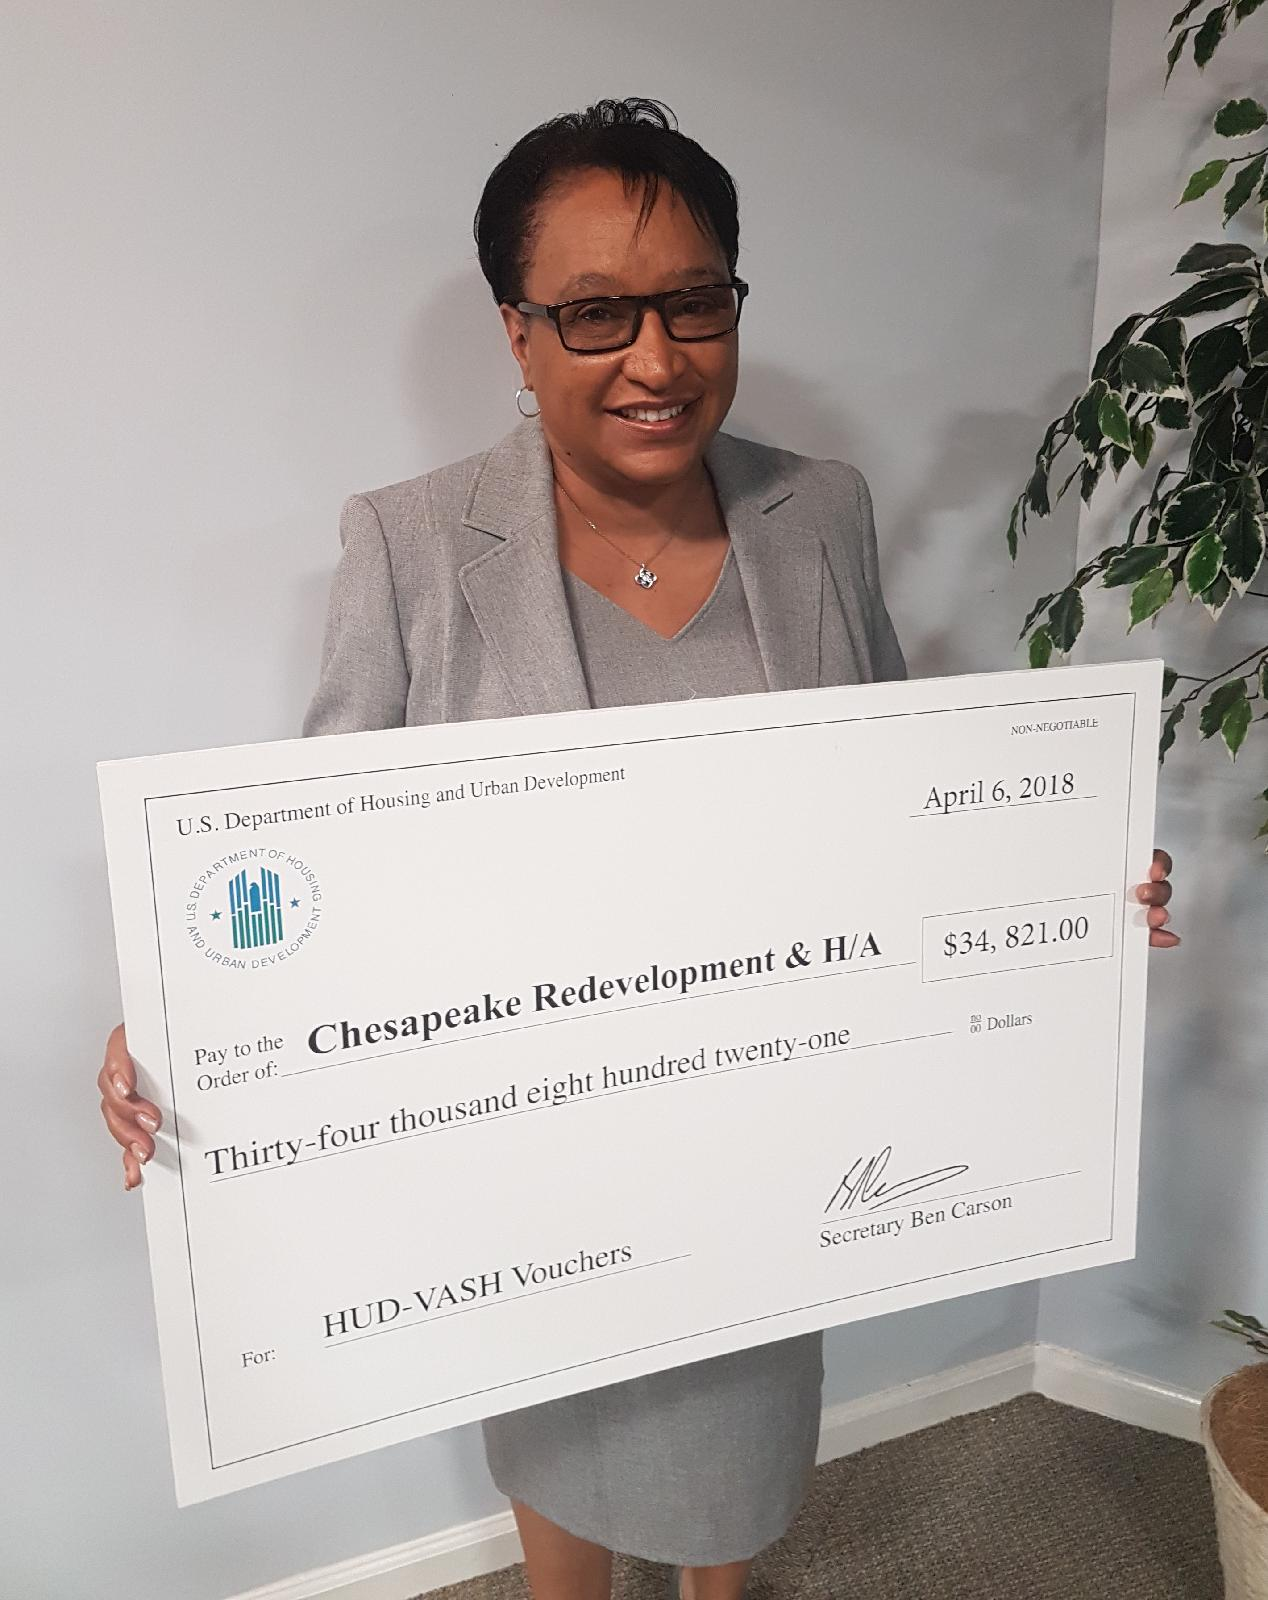 Brenda with VASH voucher award from HUD April 2018A